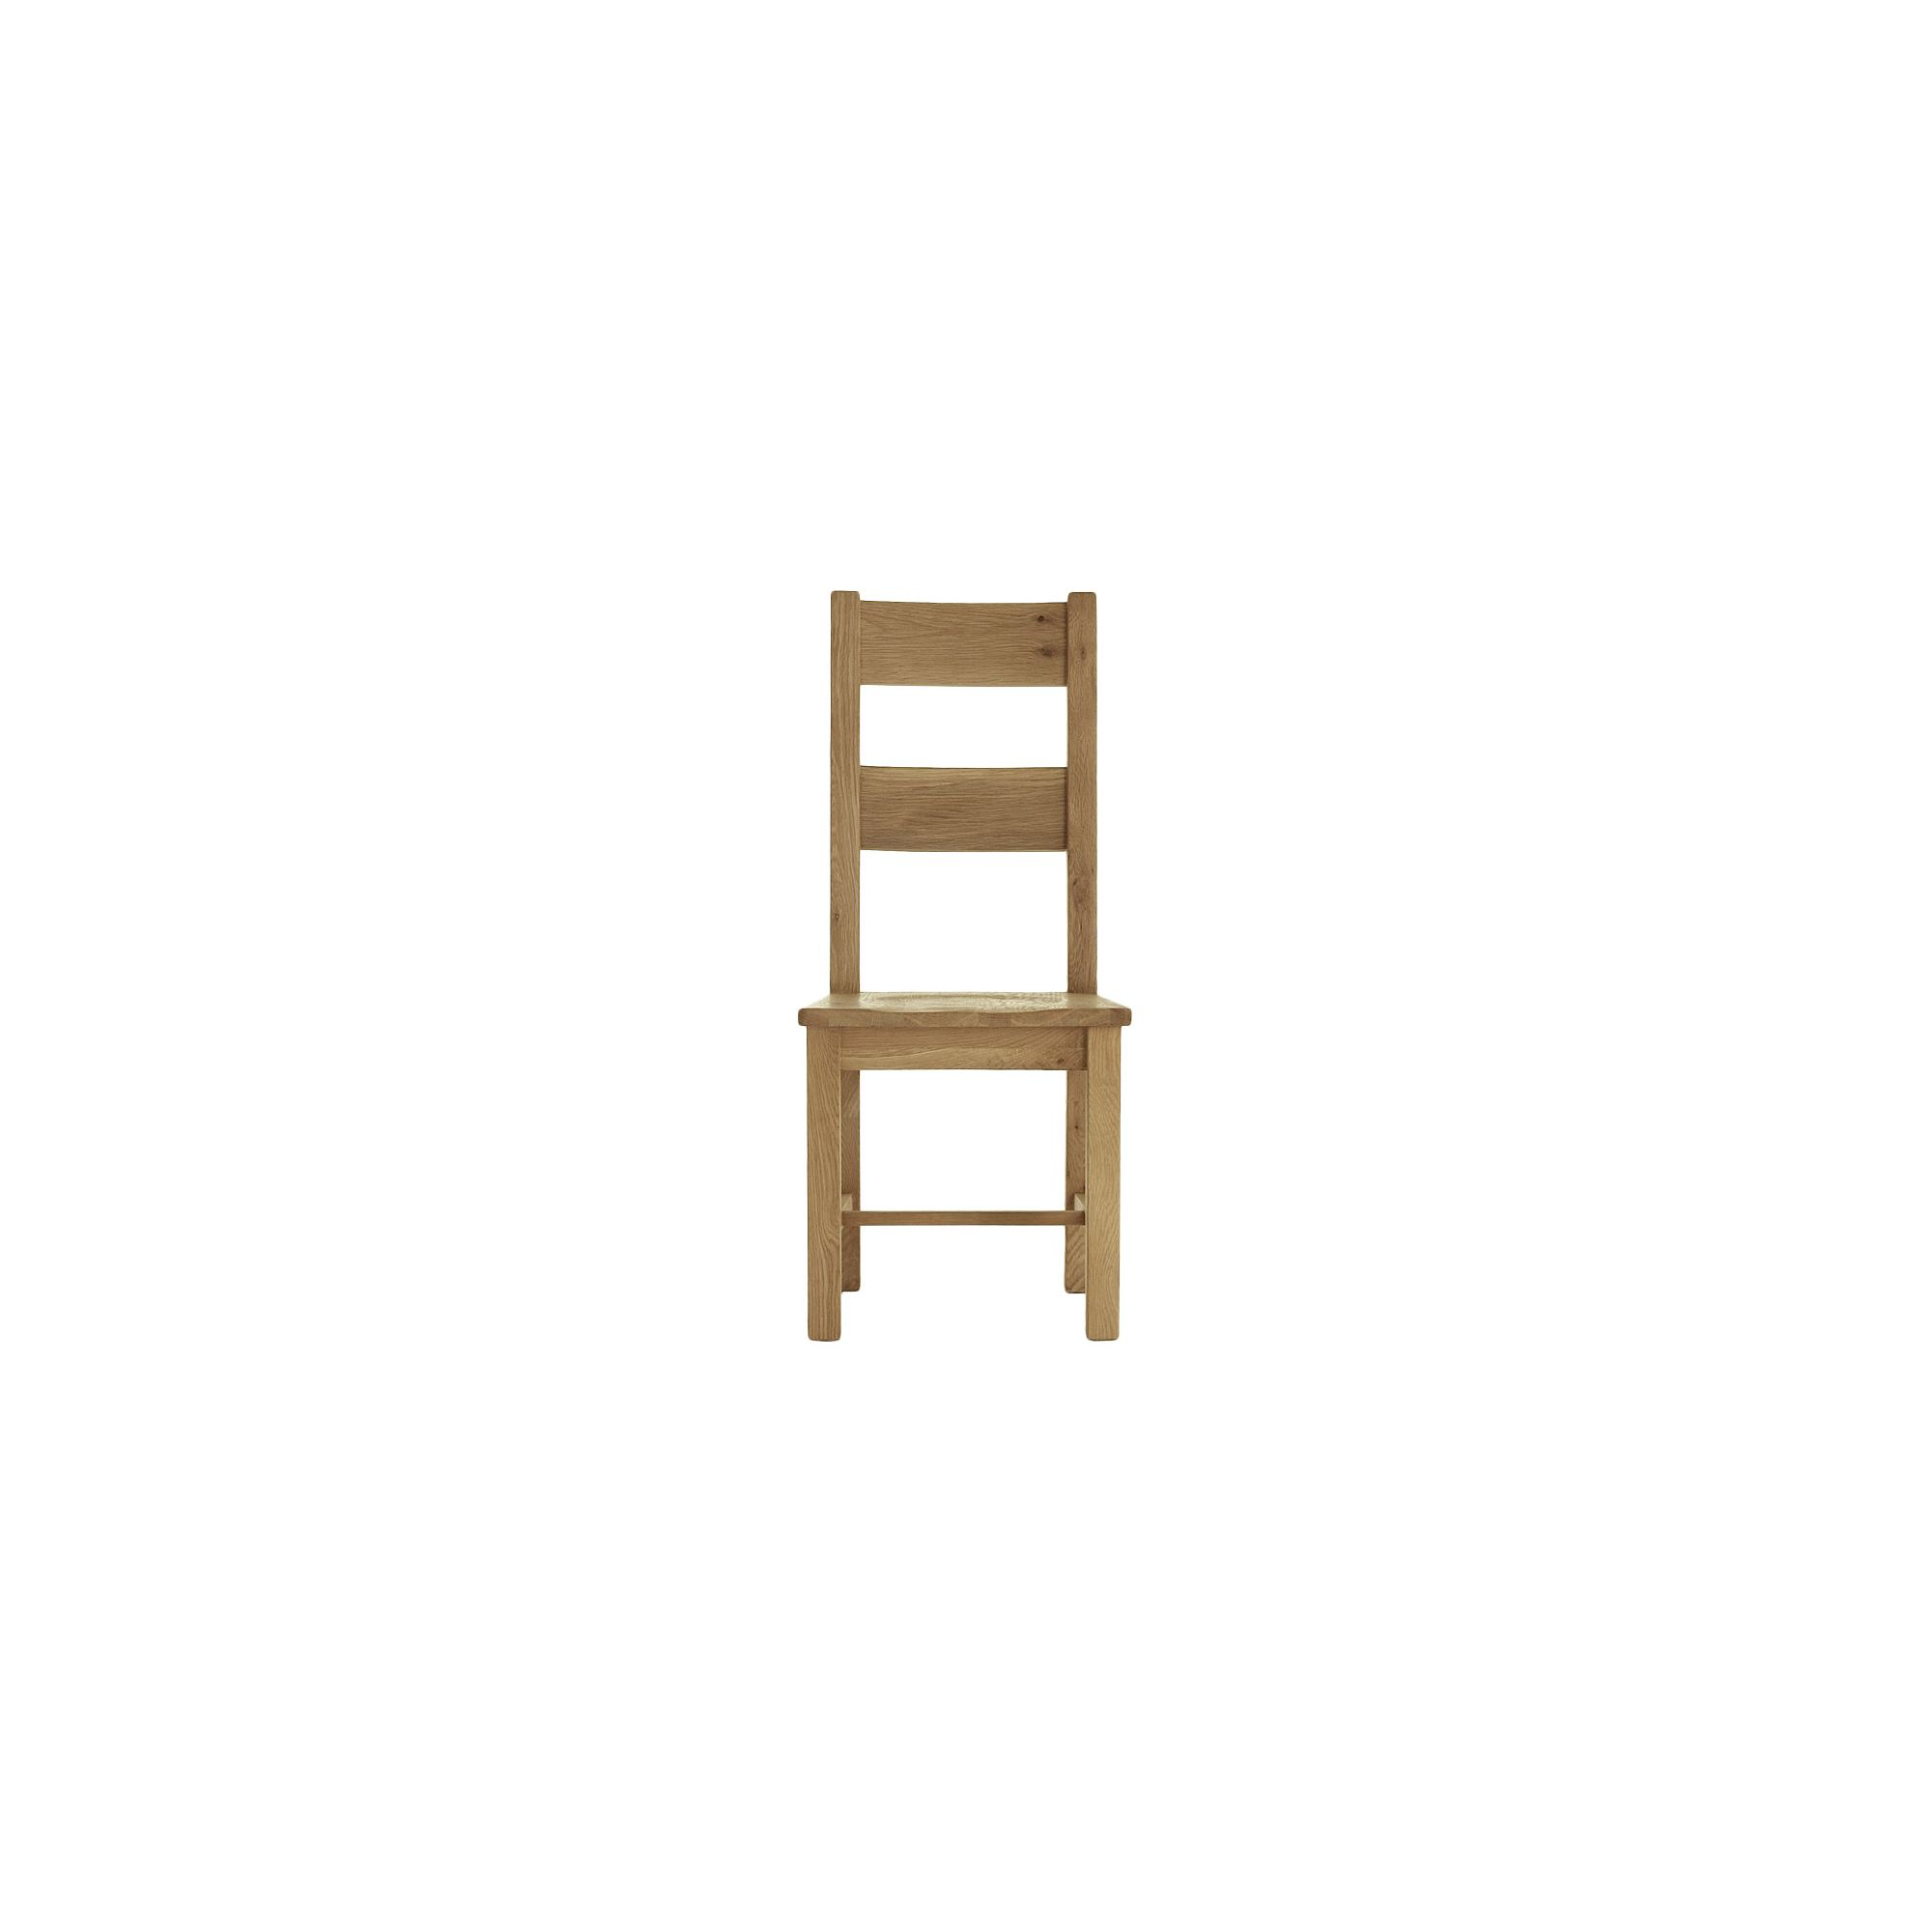 Thorndon Block Dining Chair with Wooden Seat in Natural Matured Oak